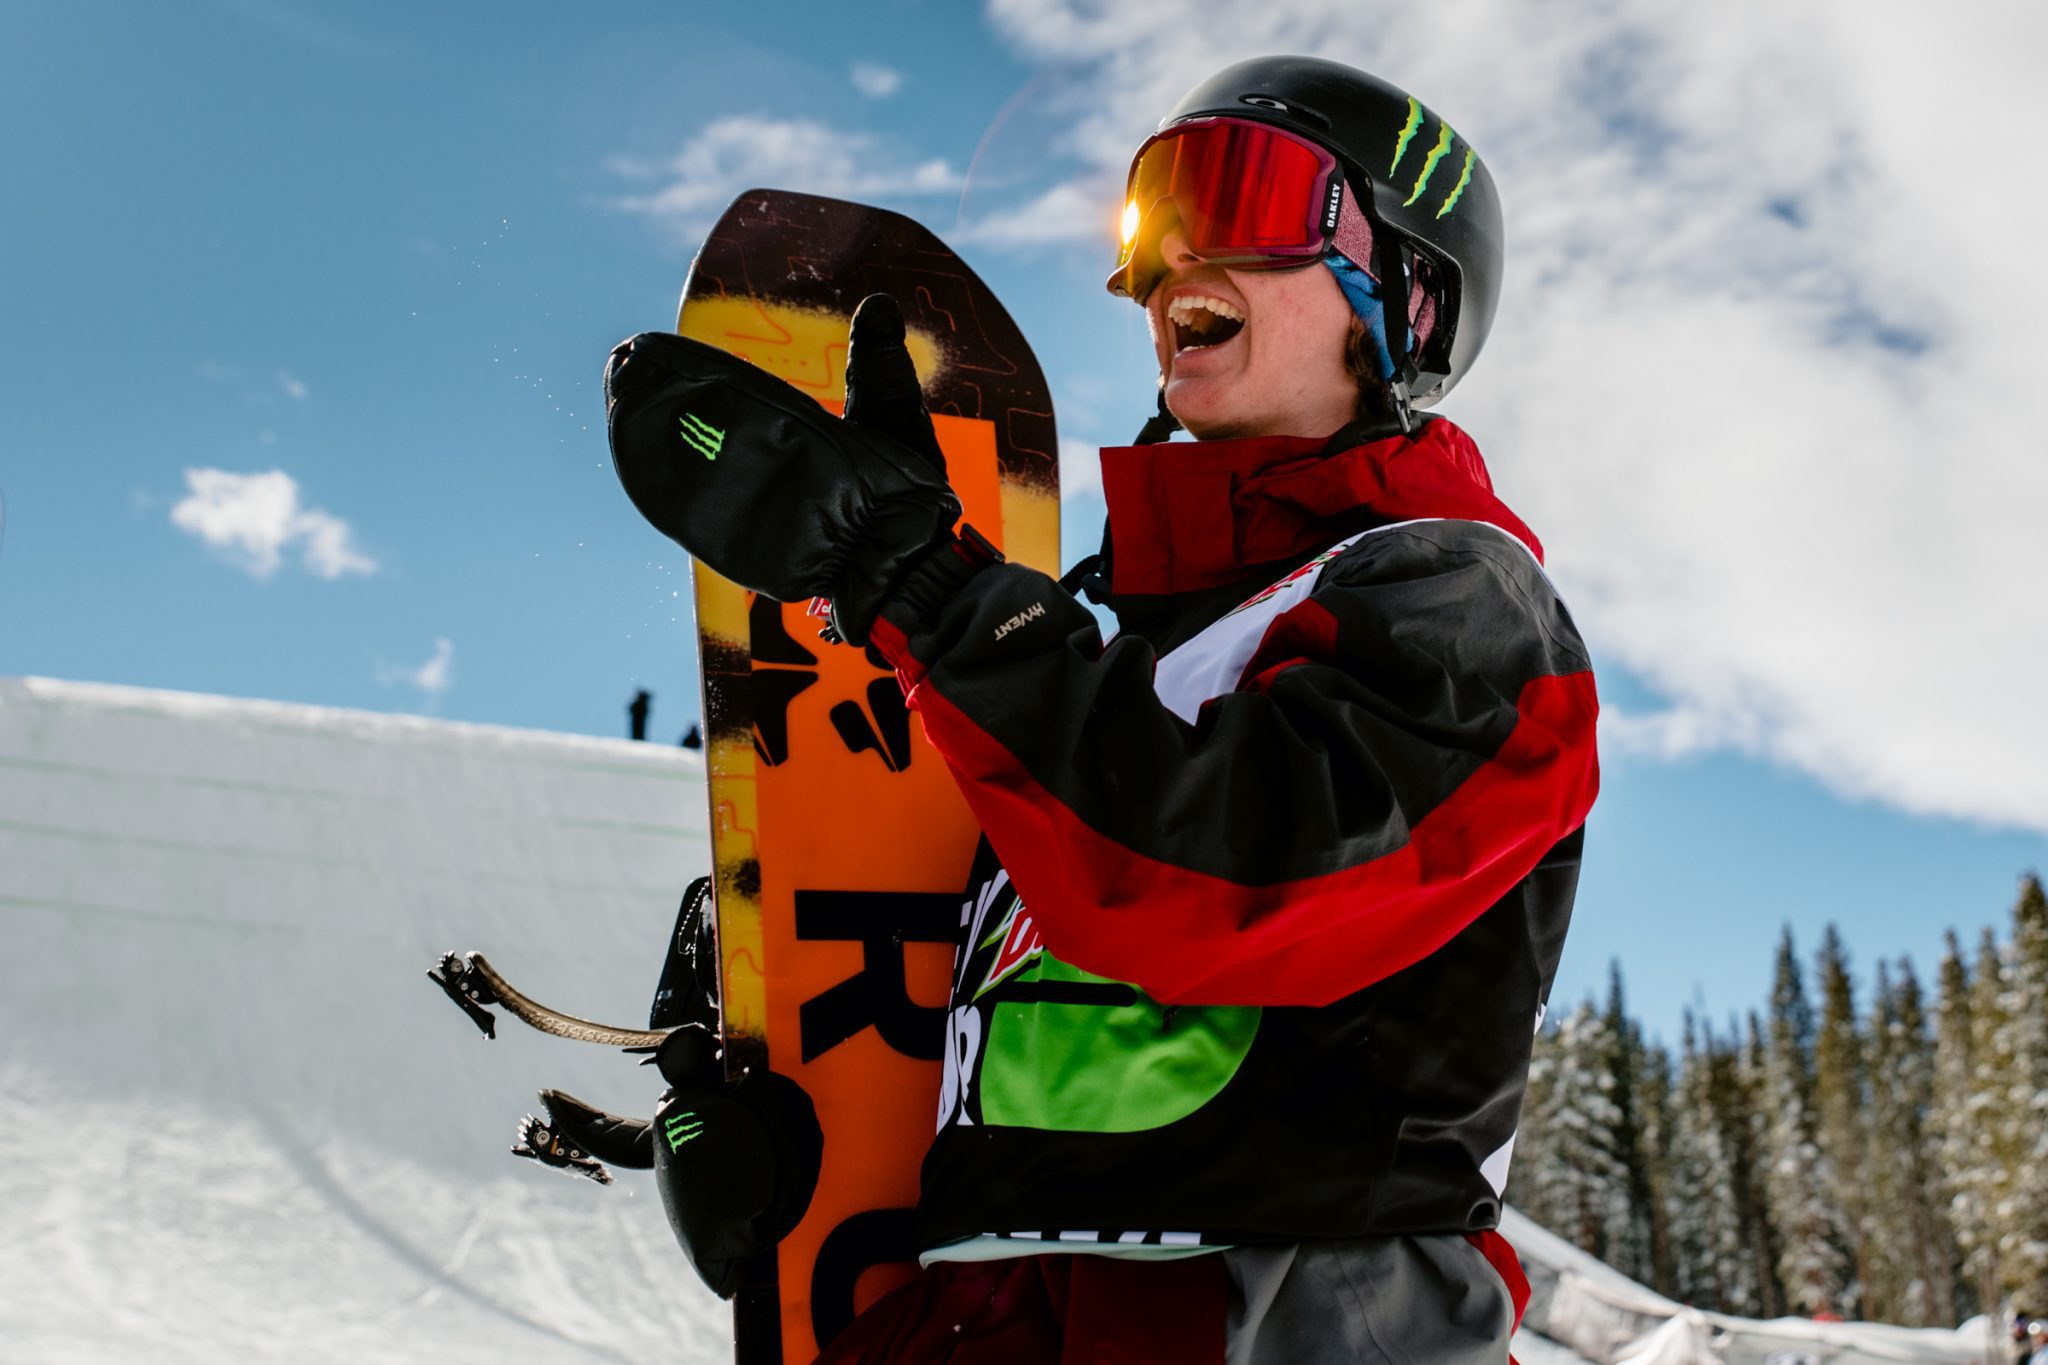 Competitive snowboarder smiling while holding their board